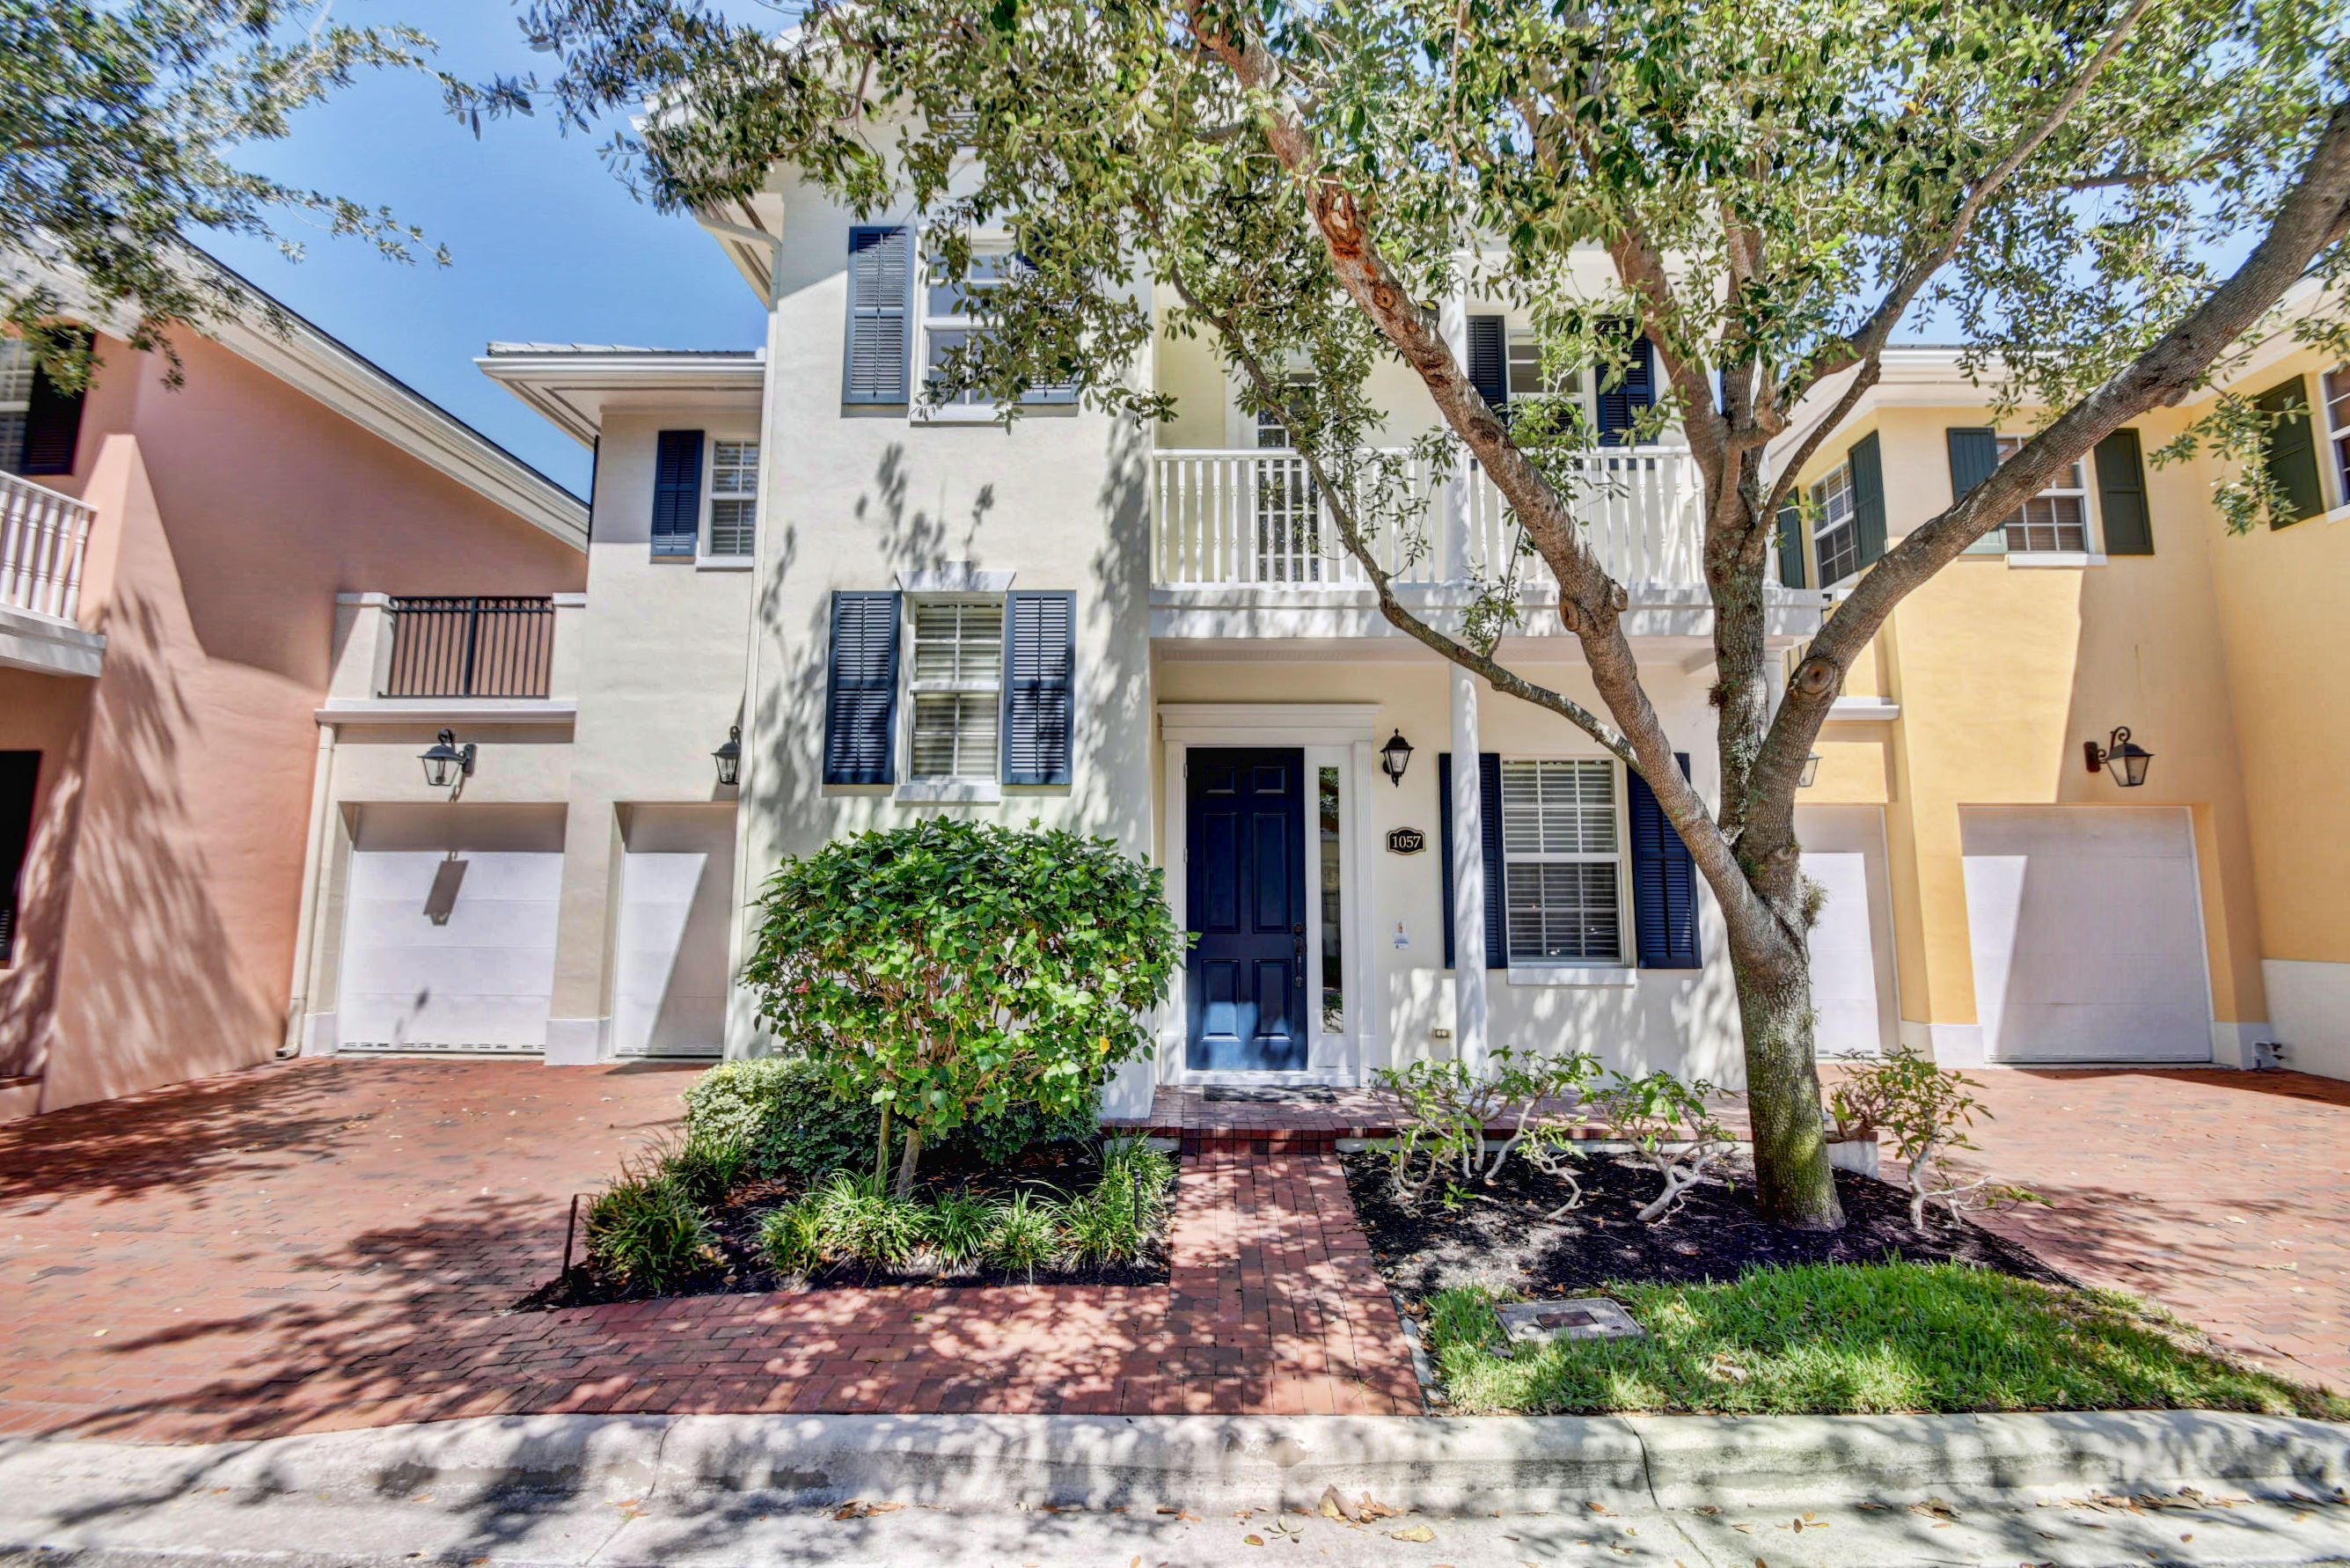 Home for sale in Heritage Delray Beach Florida